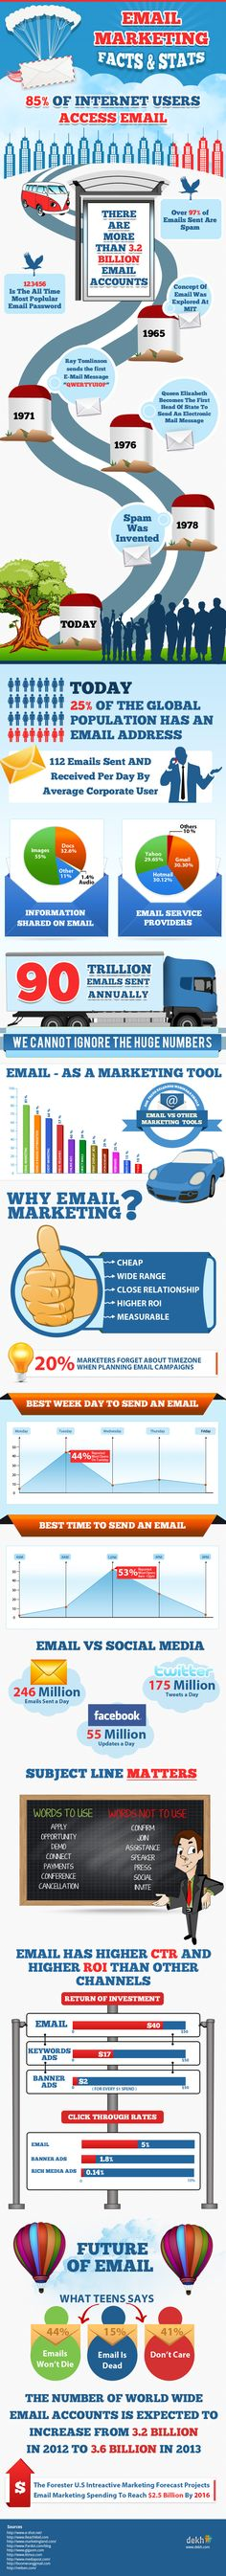 Email marketing infographic www.socialmediamamma.com